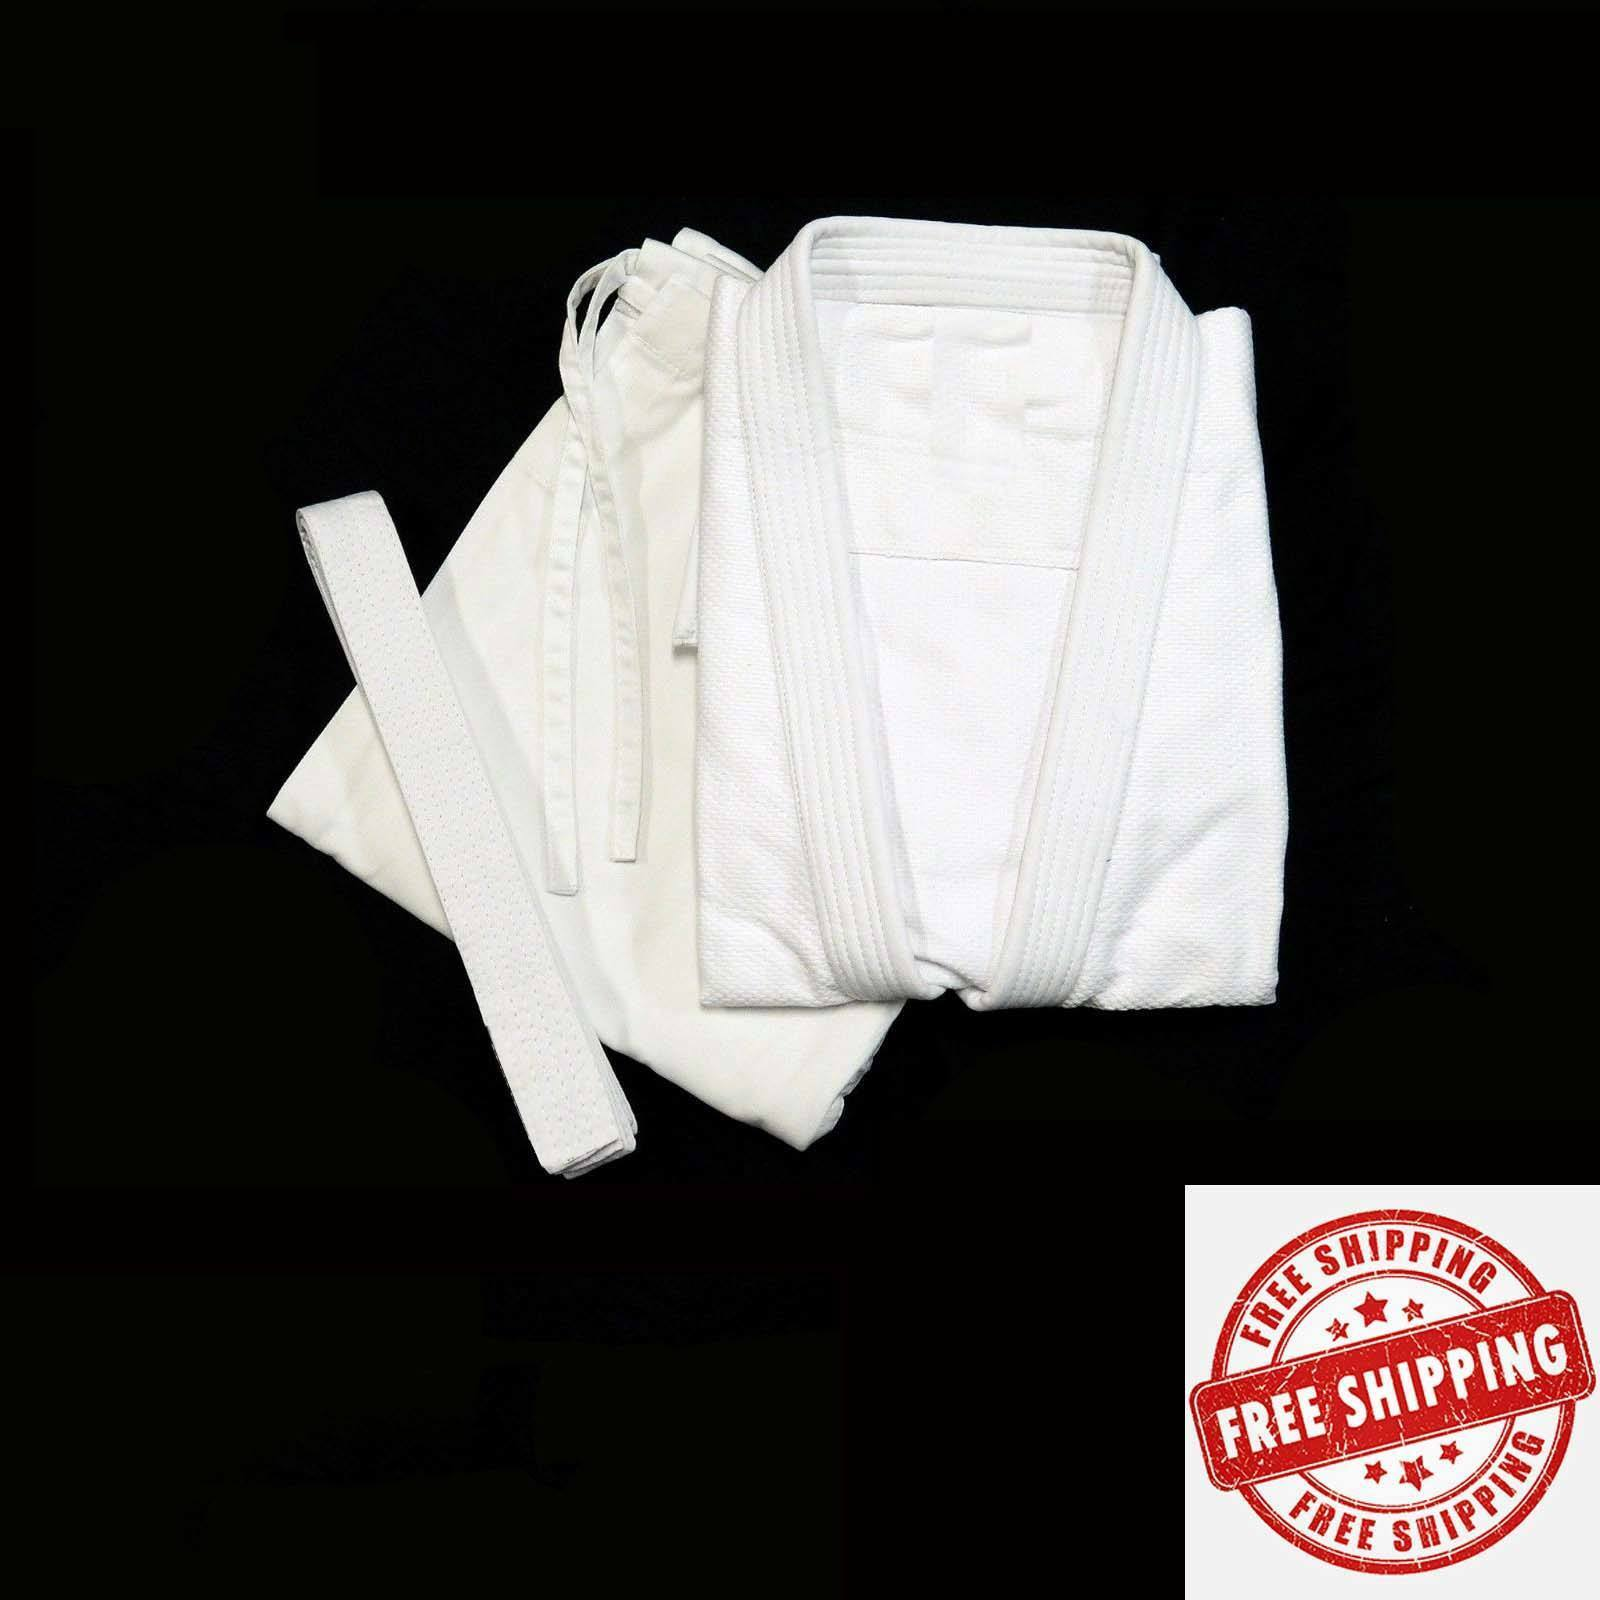 White Super  Judo GI Training Complete Uniform  with free belt 000-6 size  up to 42% off